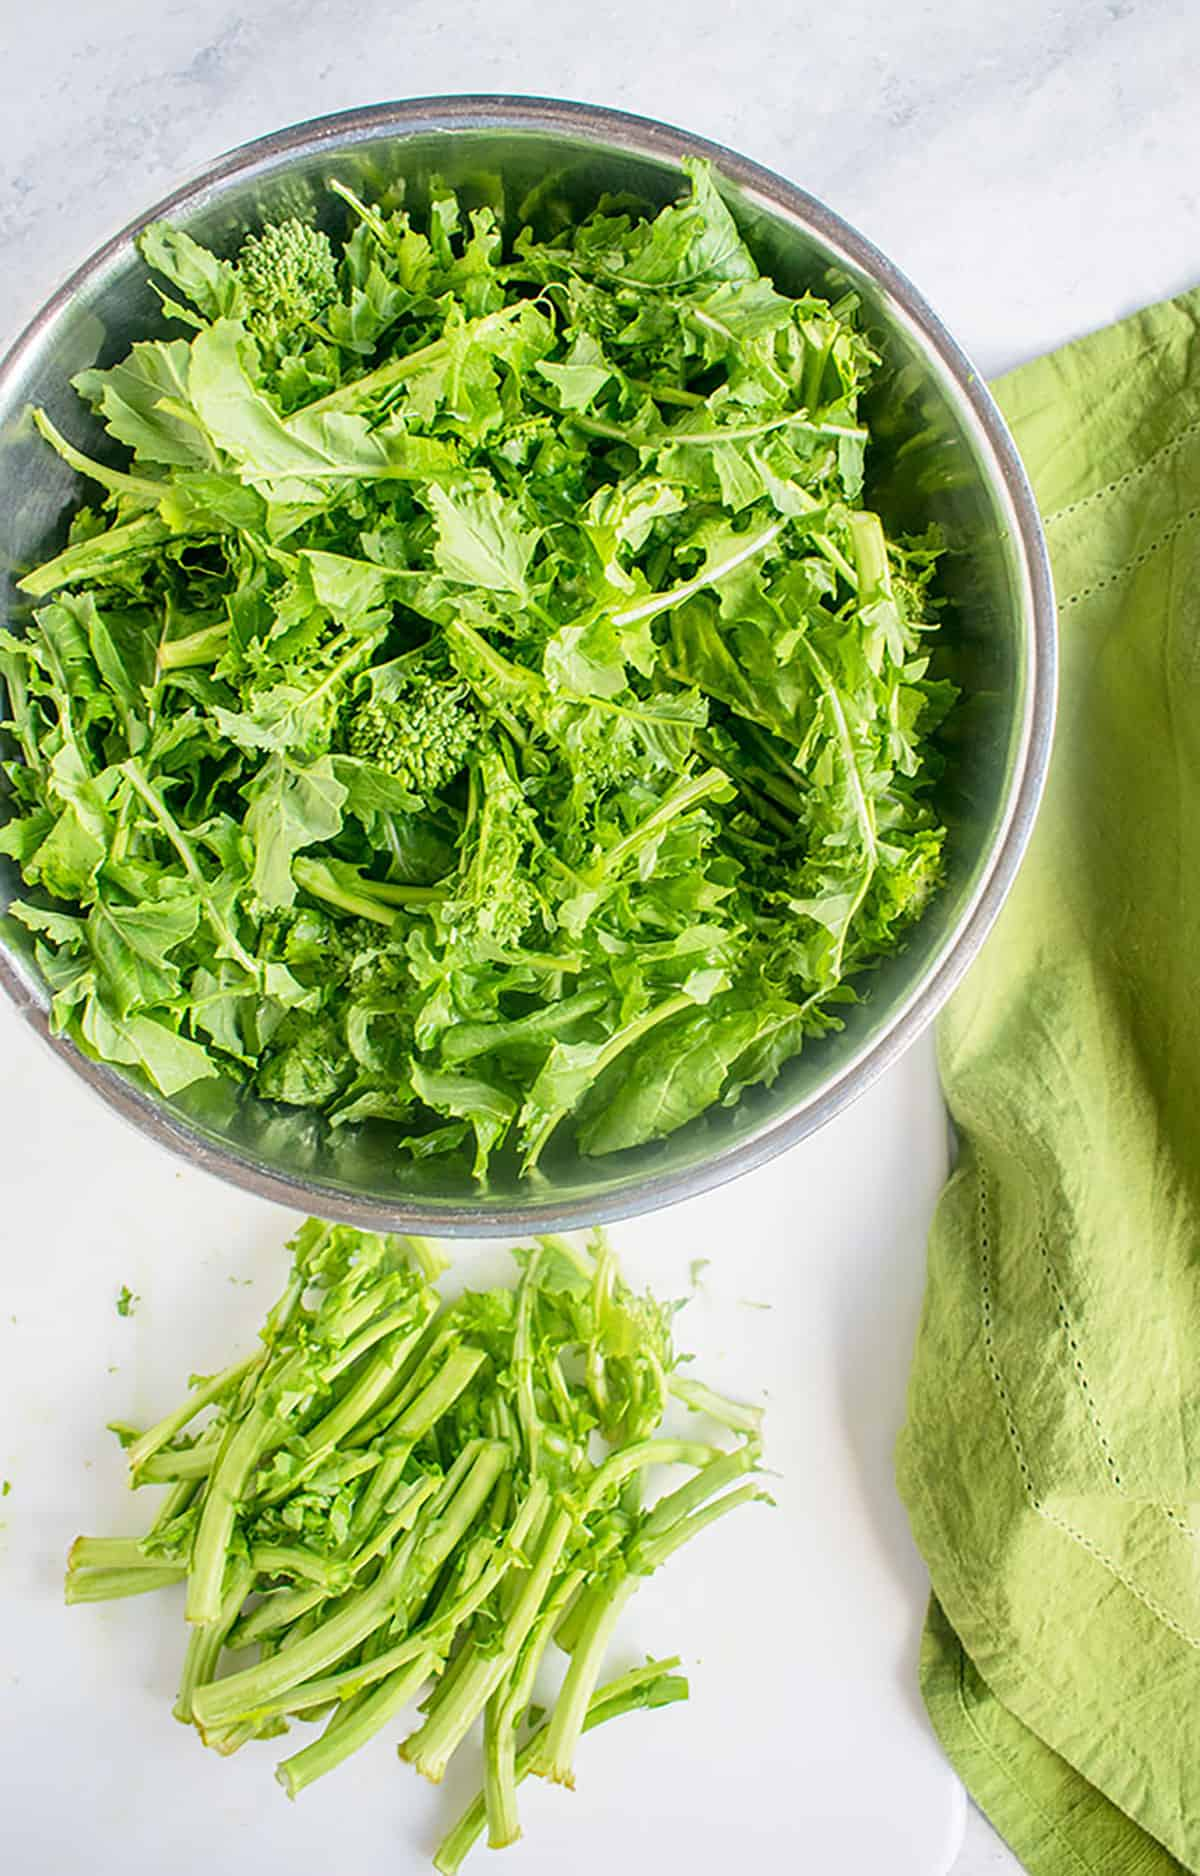 raw greens in bowl, pile of stems